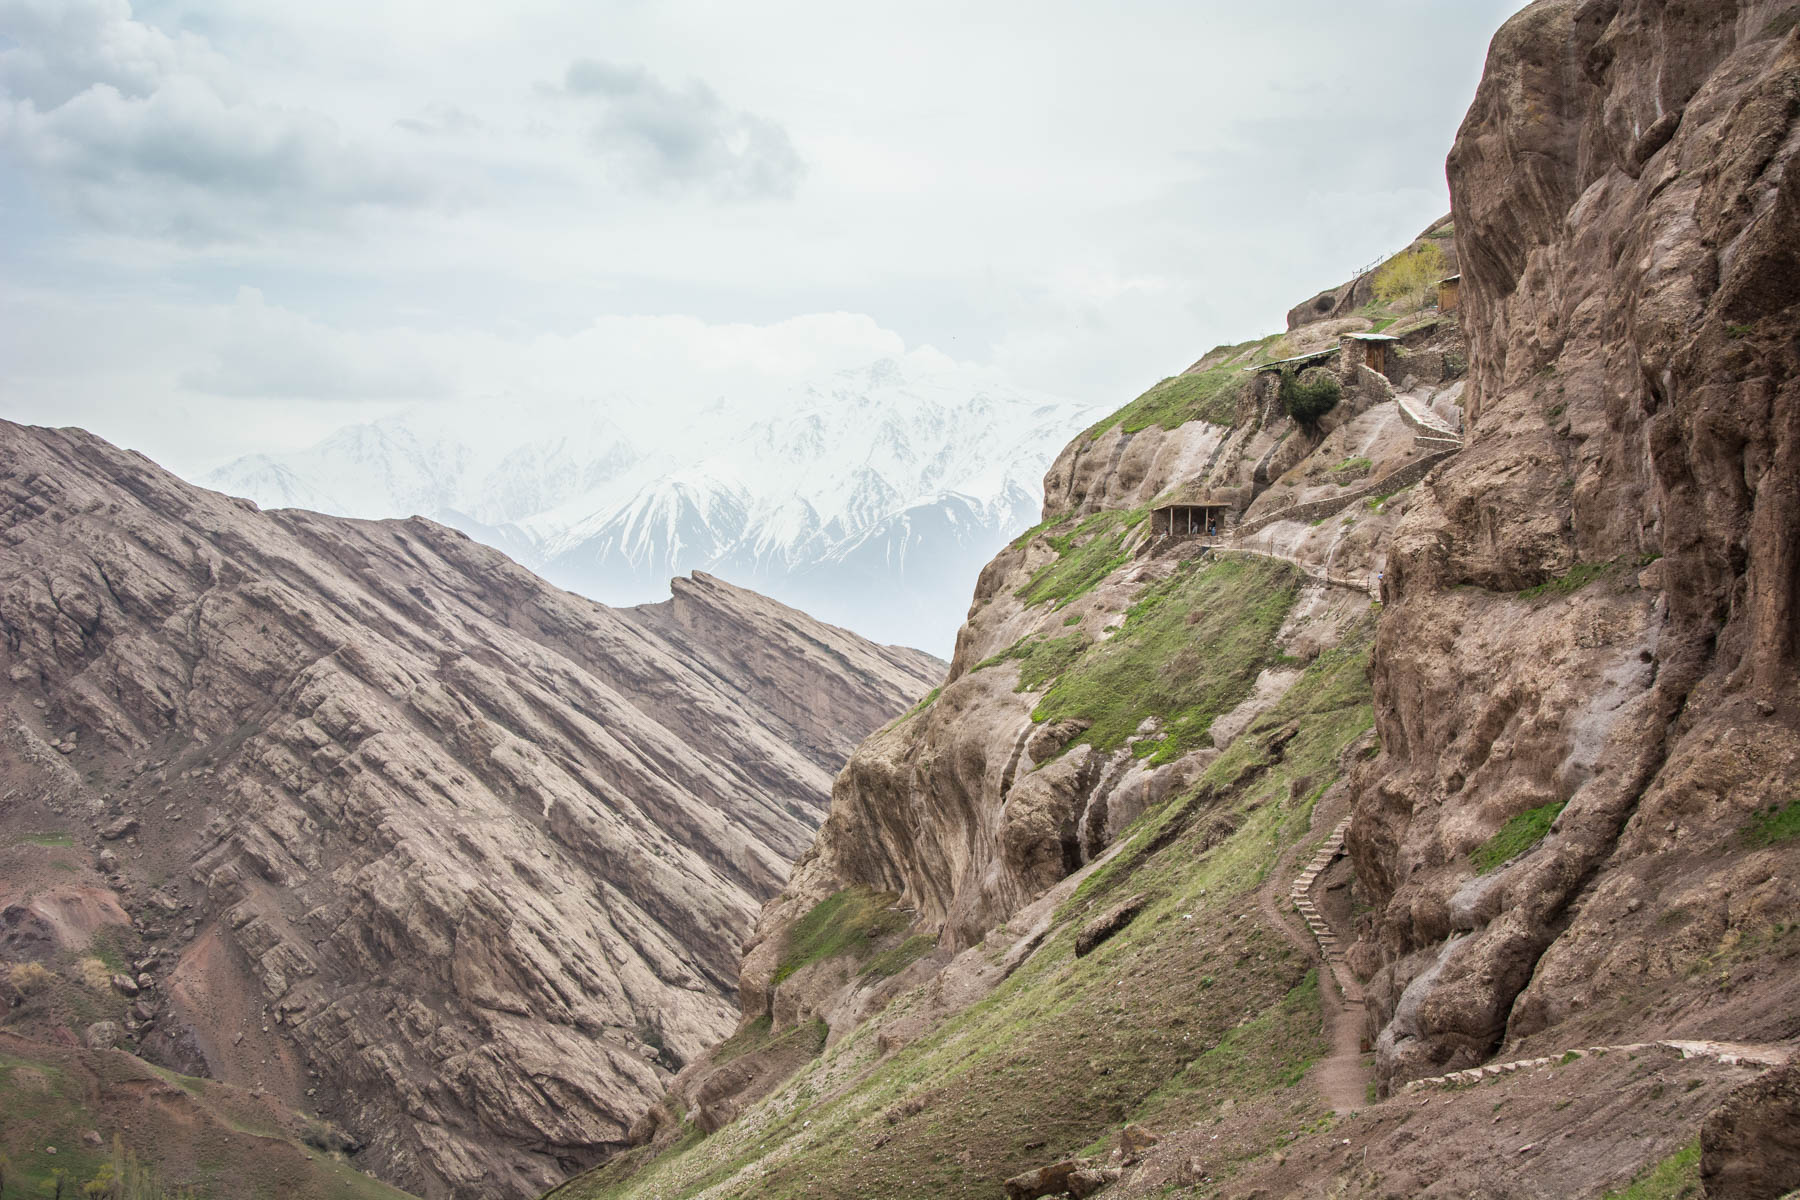 Zig-zagging stairway up to Alamut Castle, one of the Castles of the Assassins in the Alamut Valley in northern Iran.